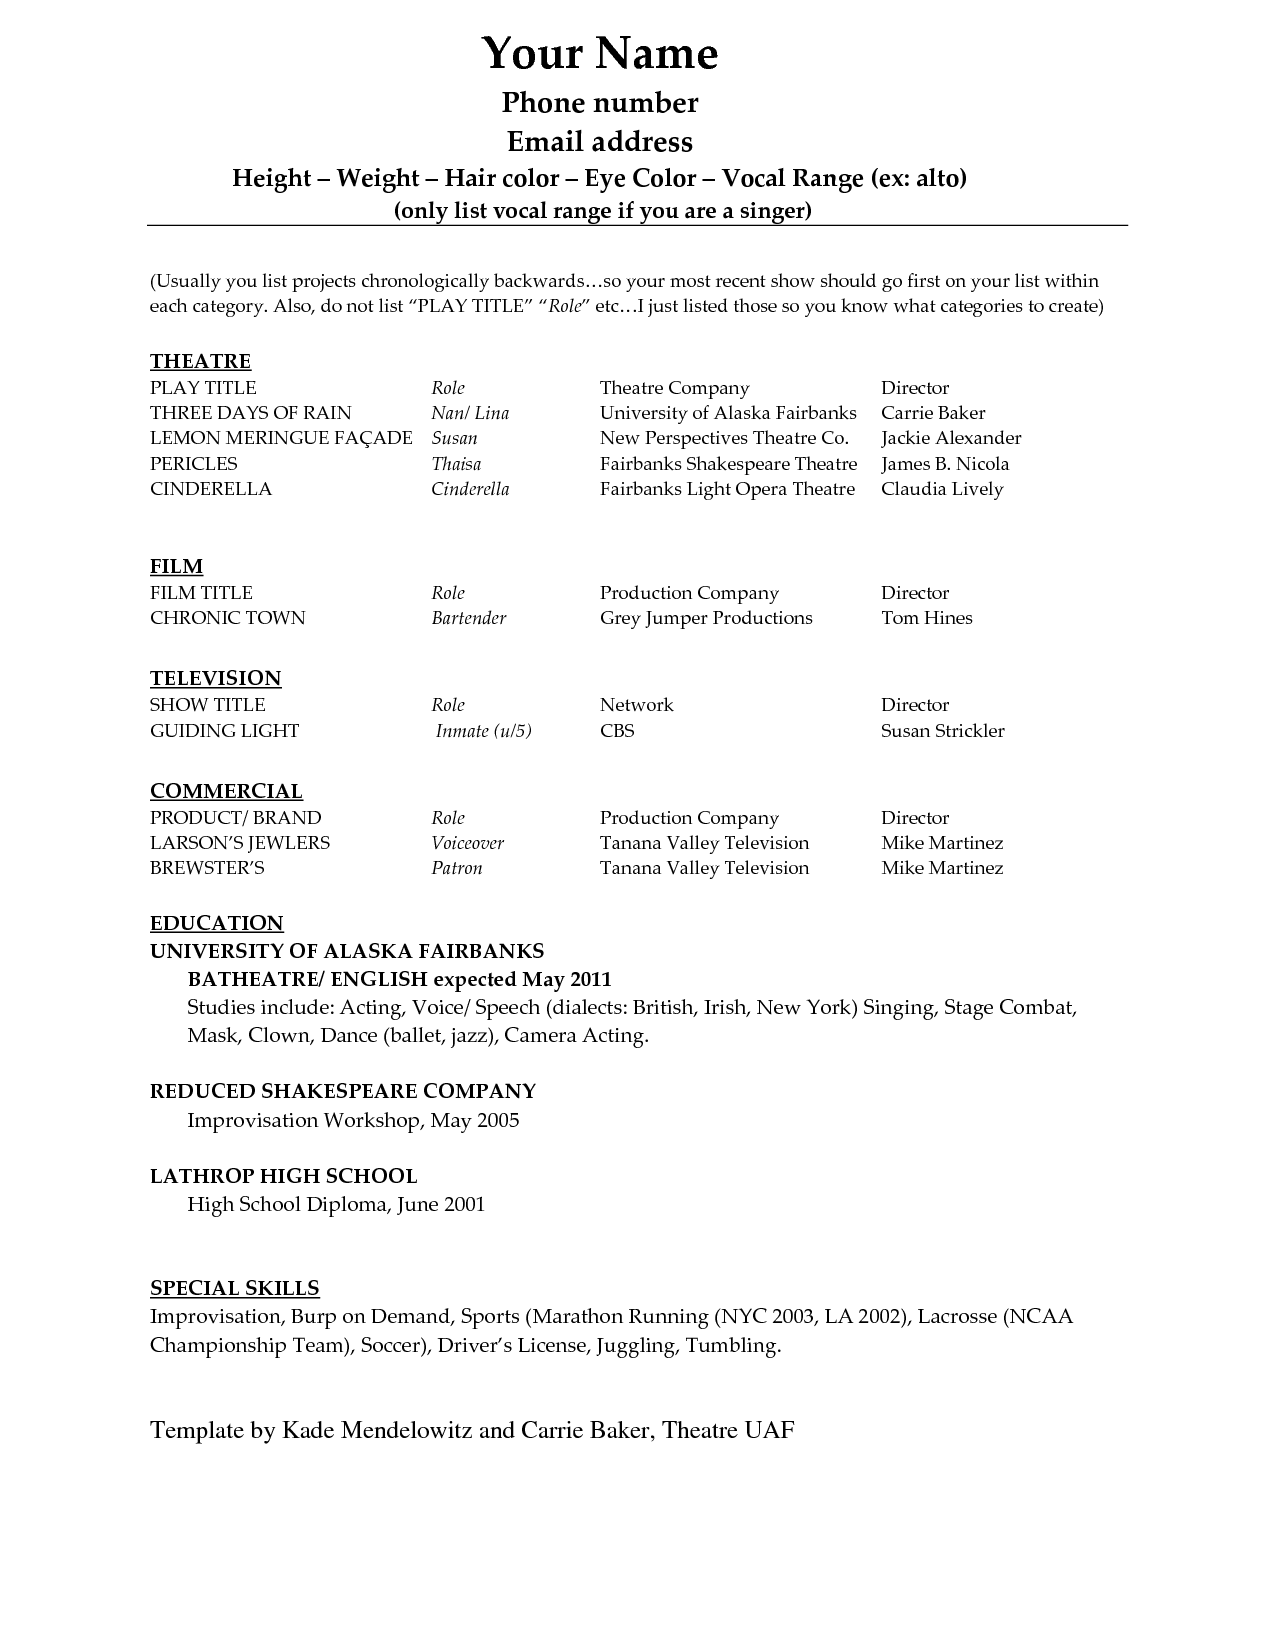 Acting resume template download free httpresumecareer acting resume template download free httpresumecareerfo yelopaper Choice Image